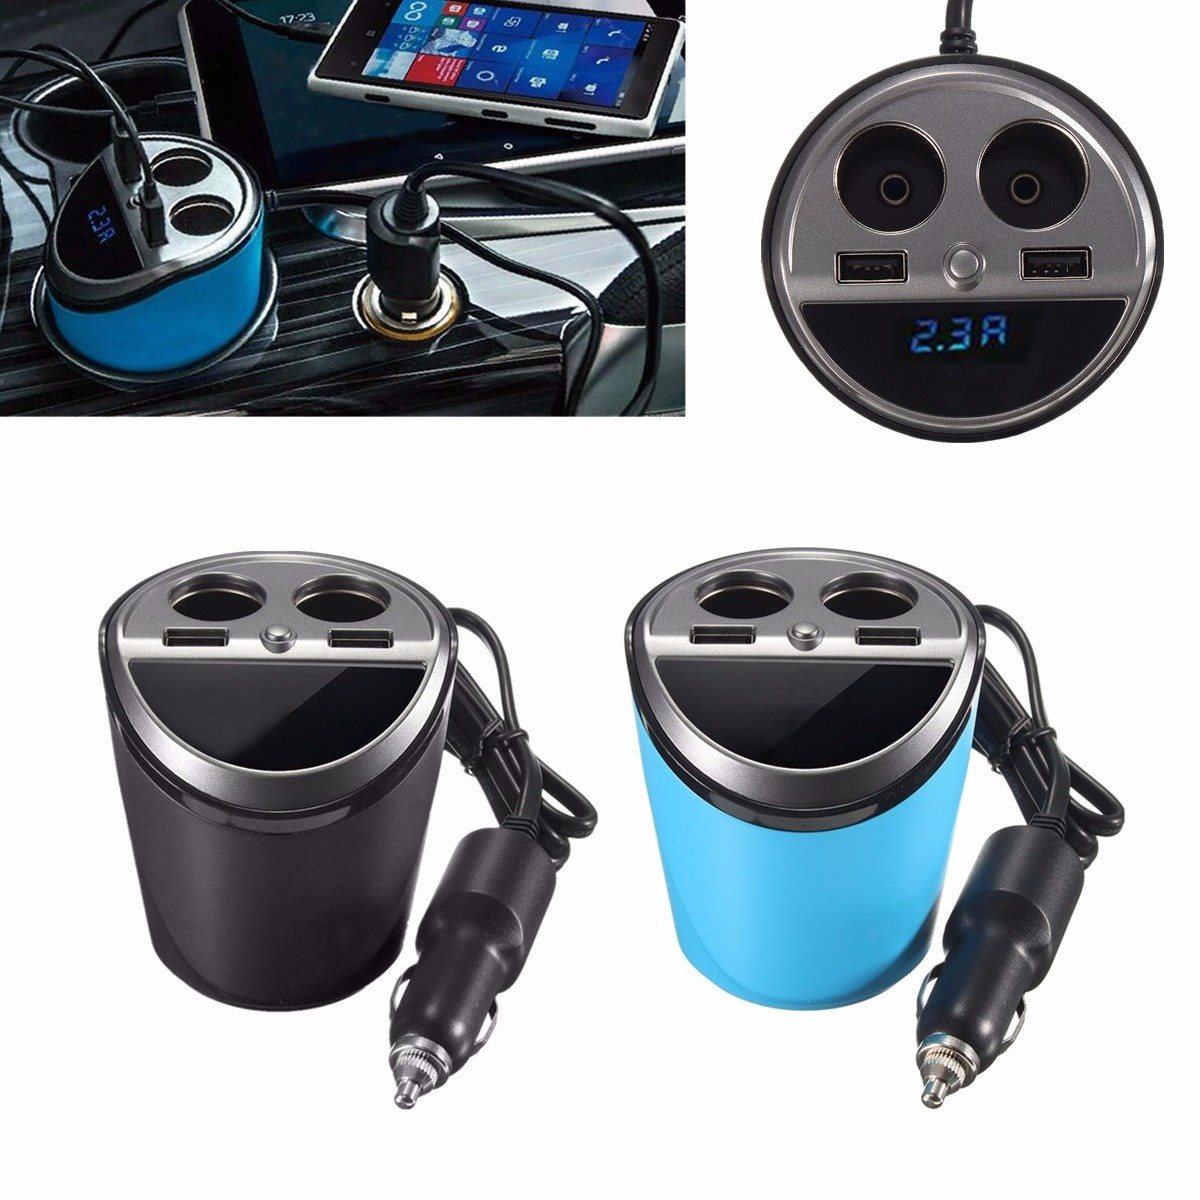 12-24V Output USB Charger Socket Car Cigarette Lighter Dual Cup Holder Adapter Power with LED Display